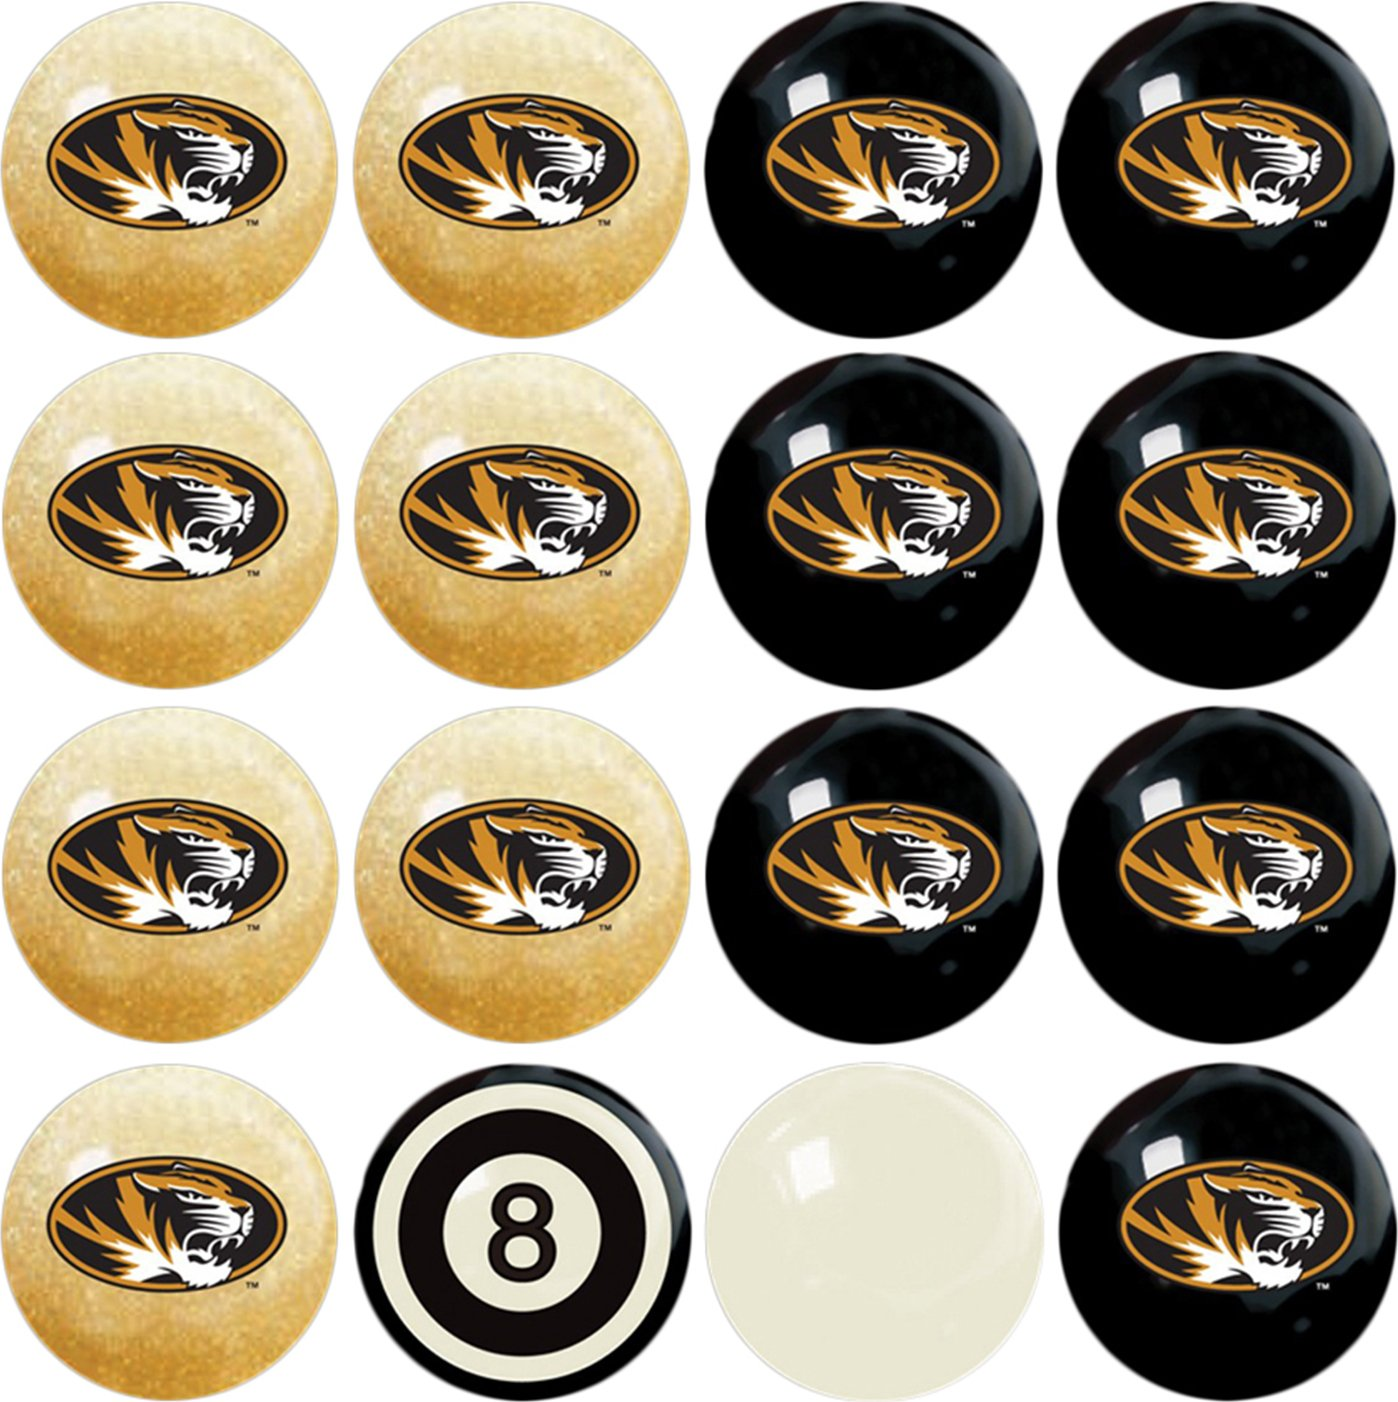 Imperial Officially Licensed NCAA Merchandise: Home vs. Away Billiard/Pool Balls, Complete 16 Ball Set, Missouri Tigers